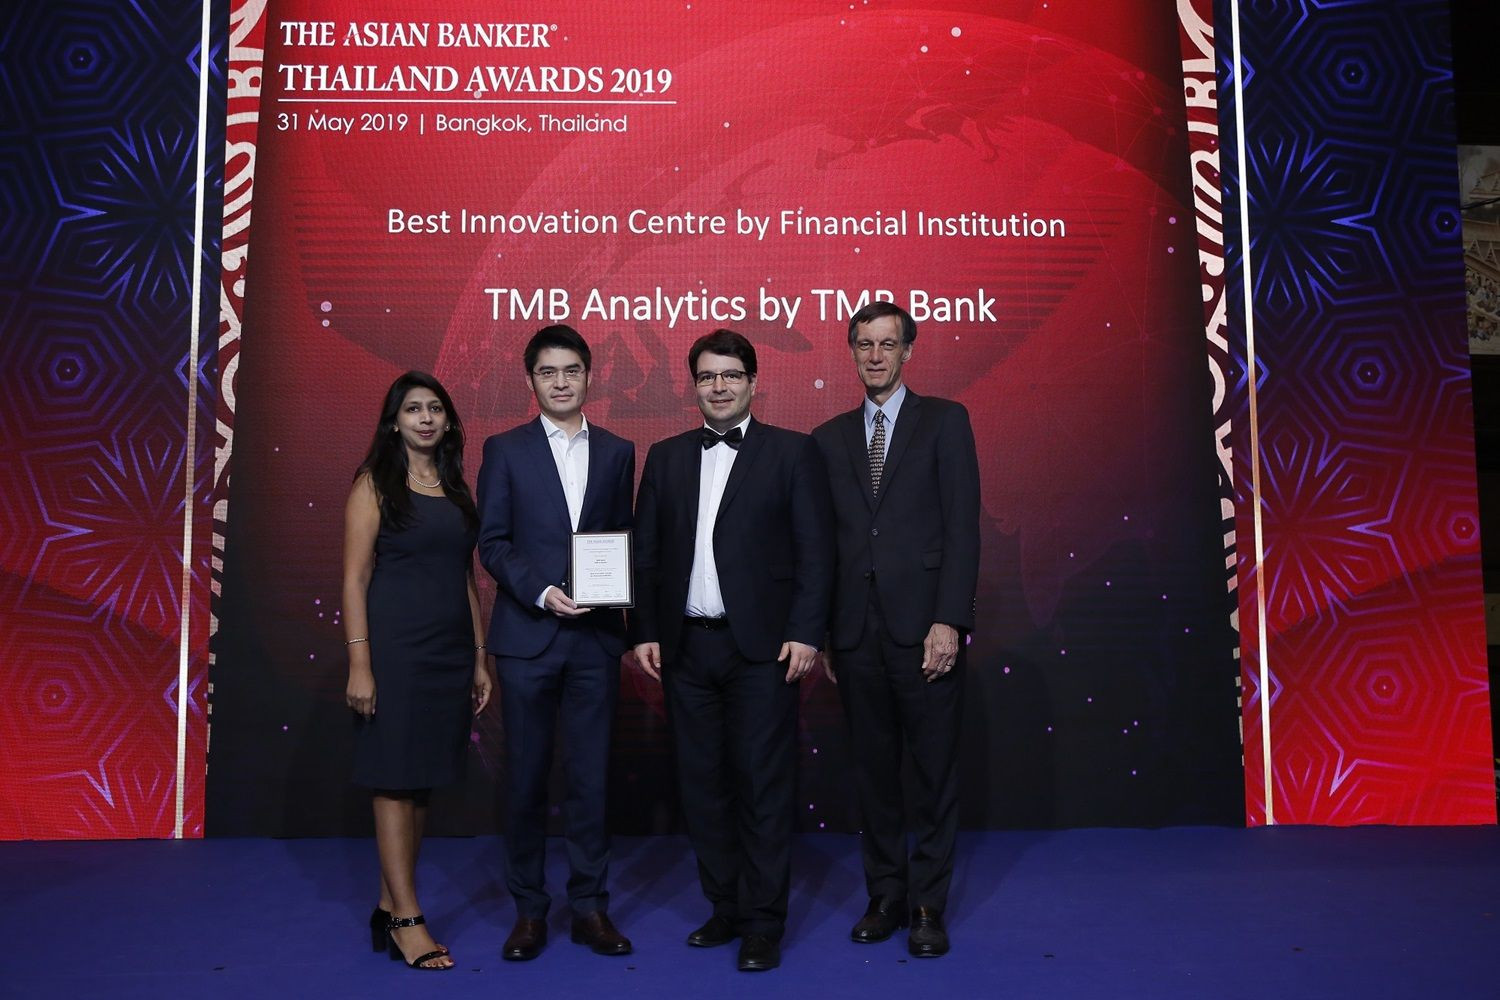 TMB Analytics รับรางวัล Best Innovation Centre by Financial Institution ในงาน THE ASIAN BANKER THAILAND AWARDS 2019